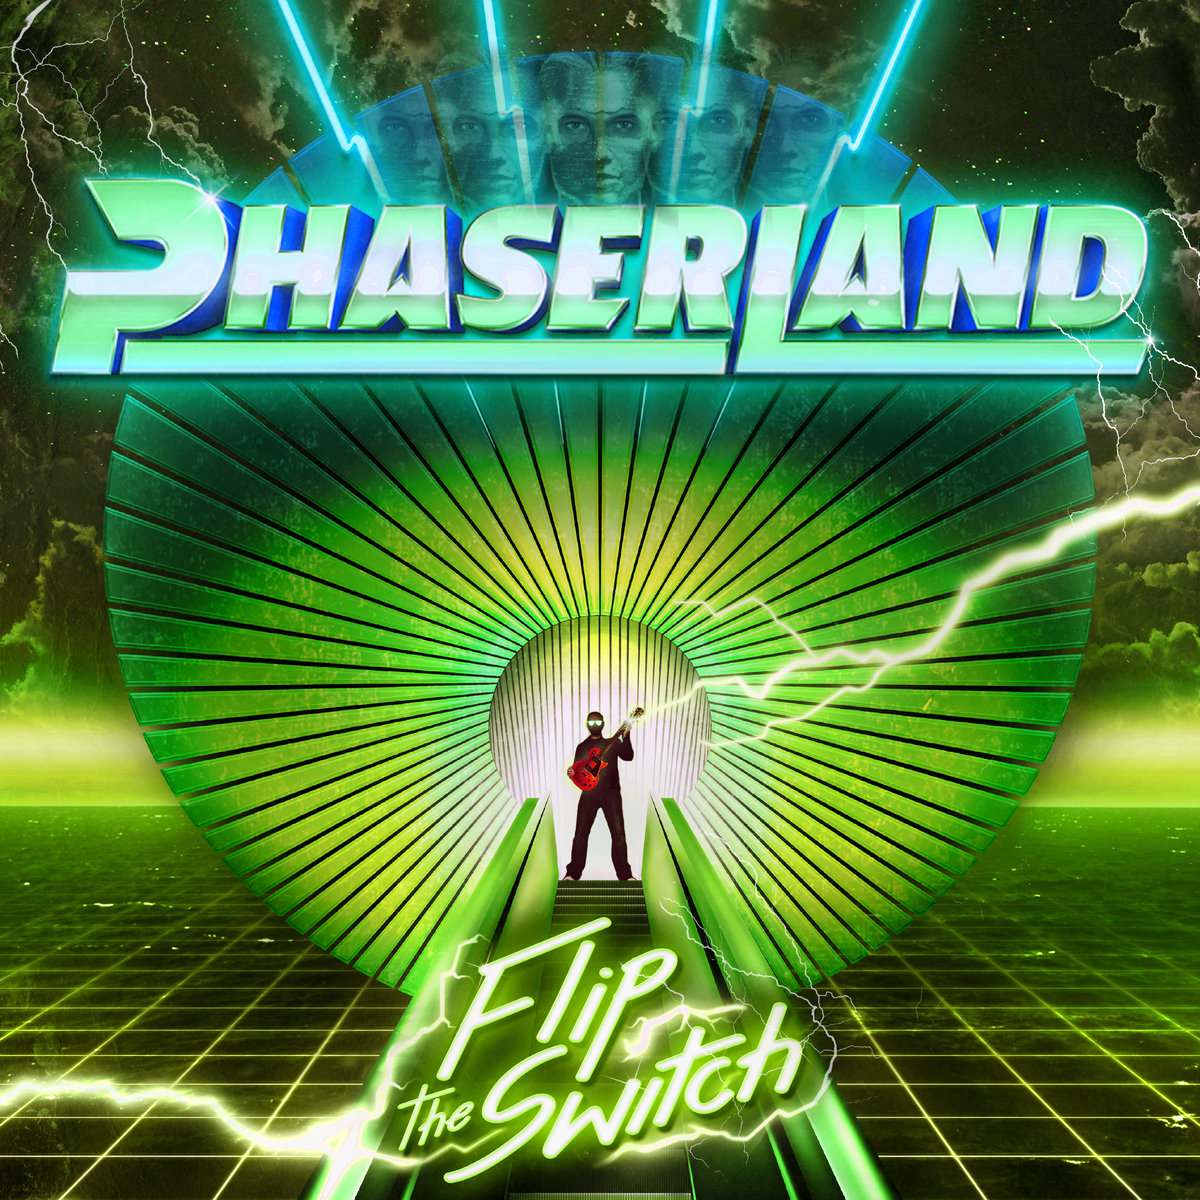 a1181748722 10 - Phaserland - Flip the Switch